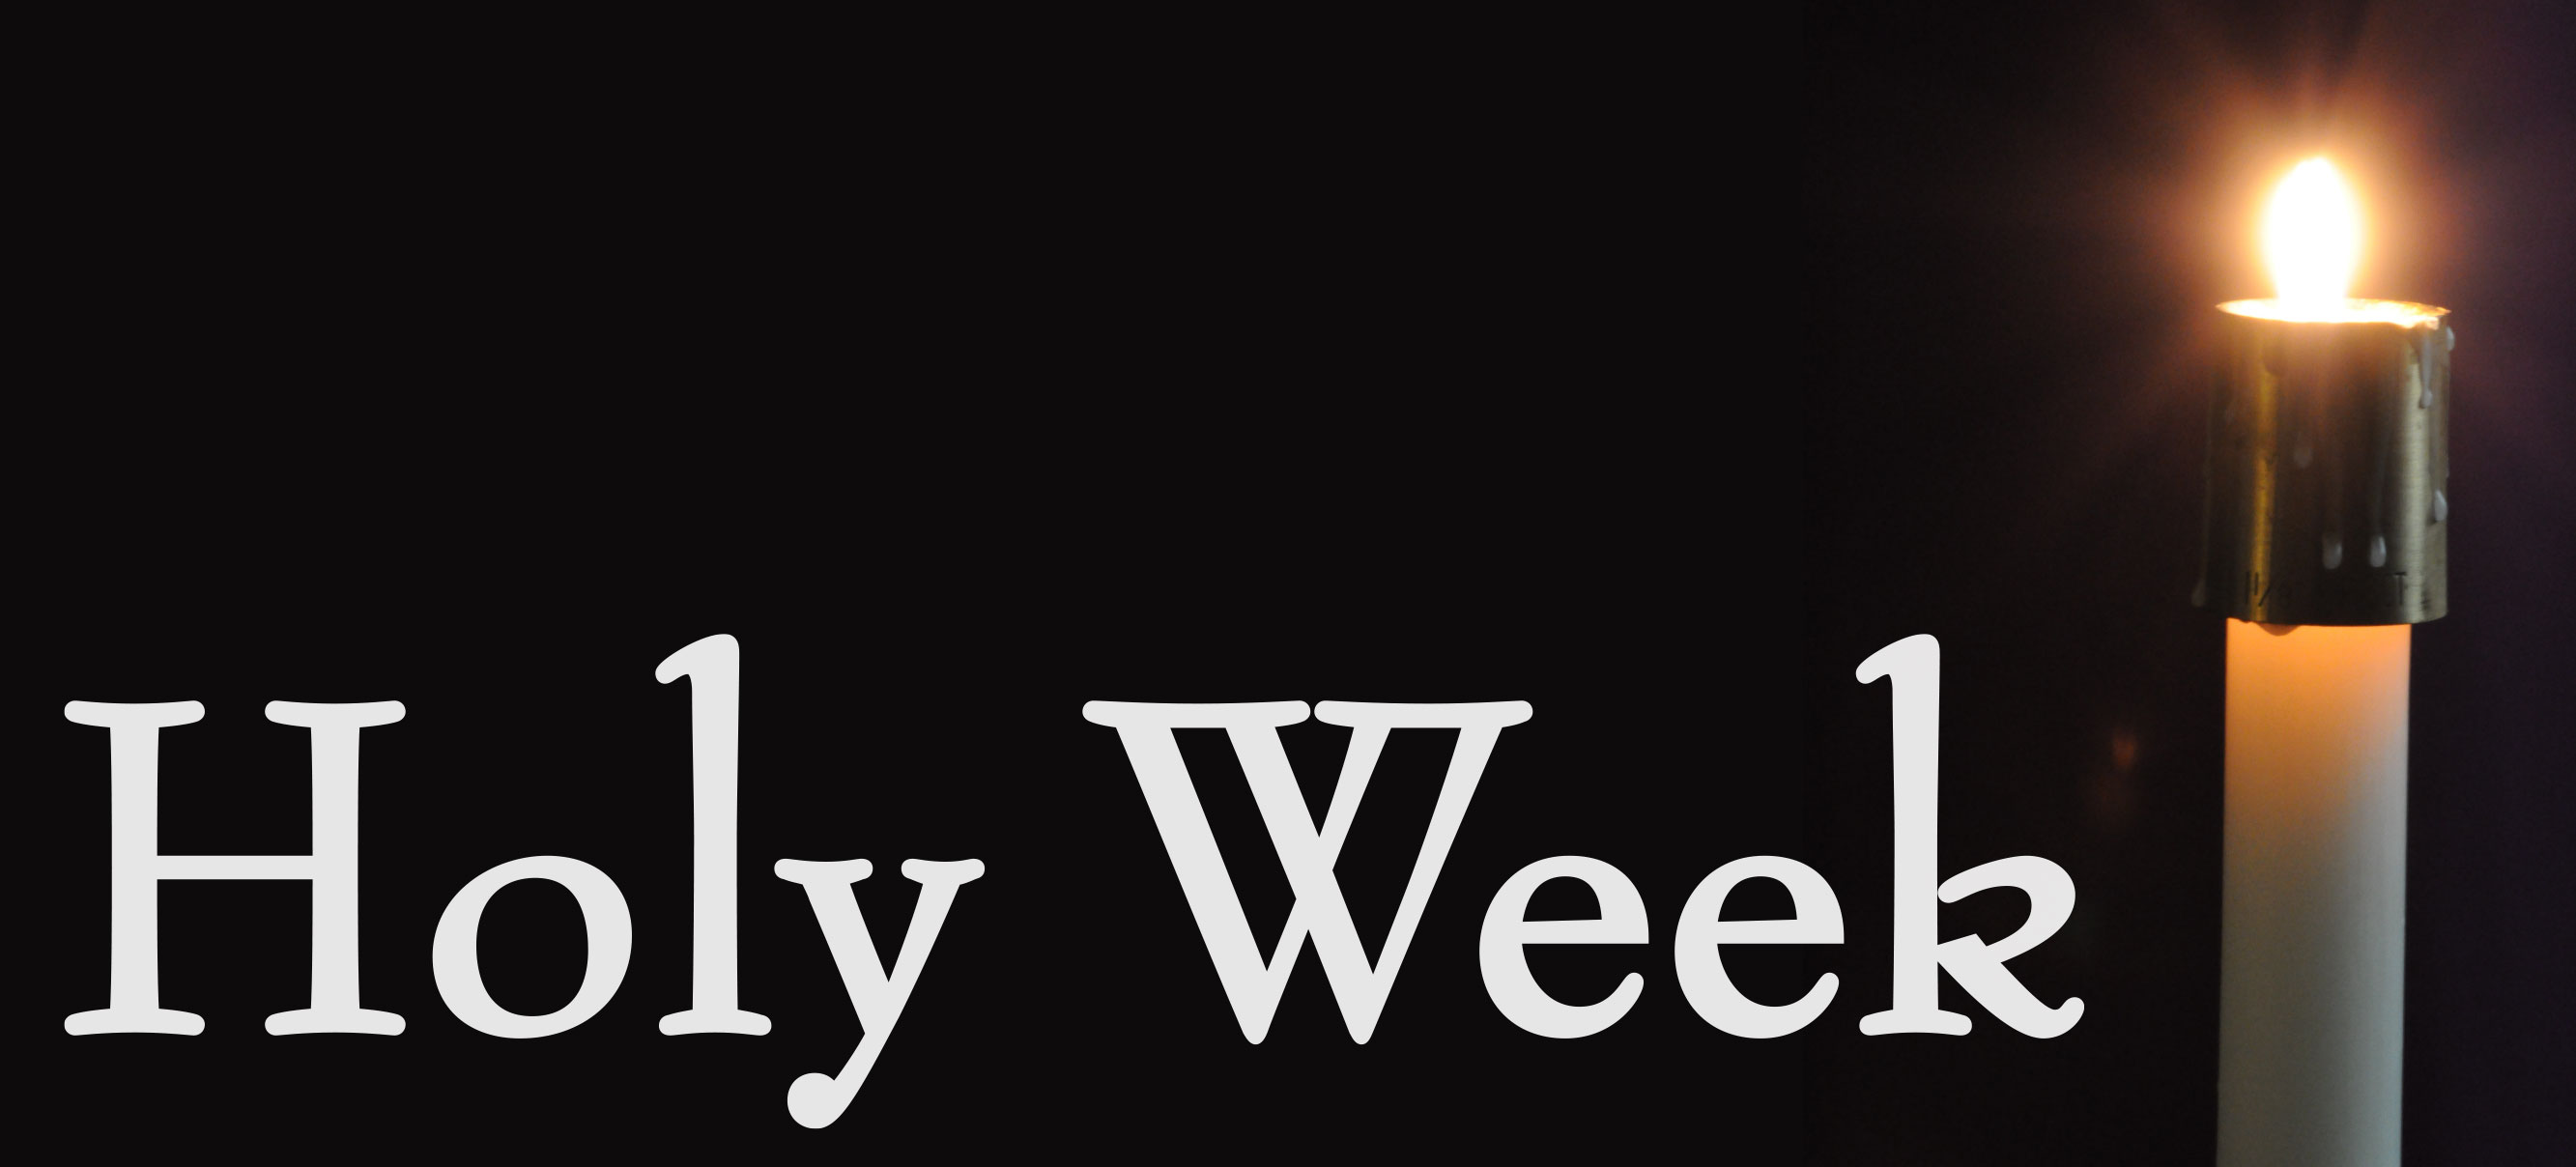 Events Of The Holy Week 1